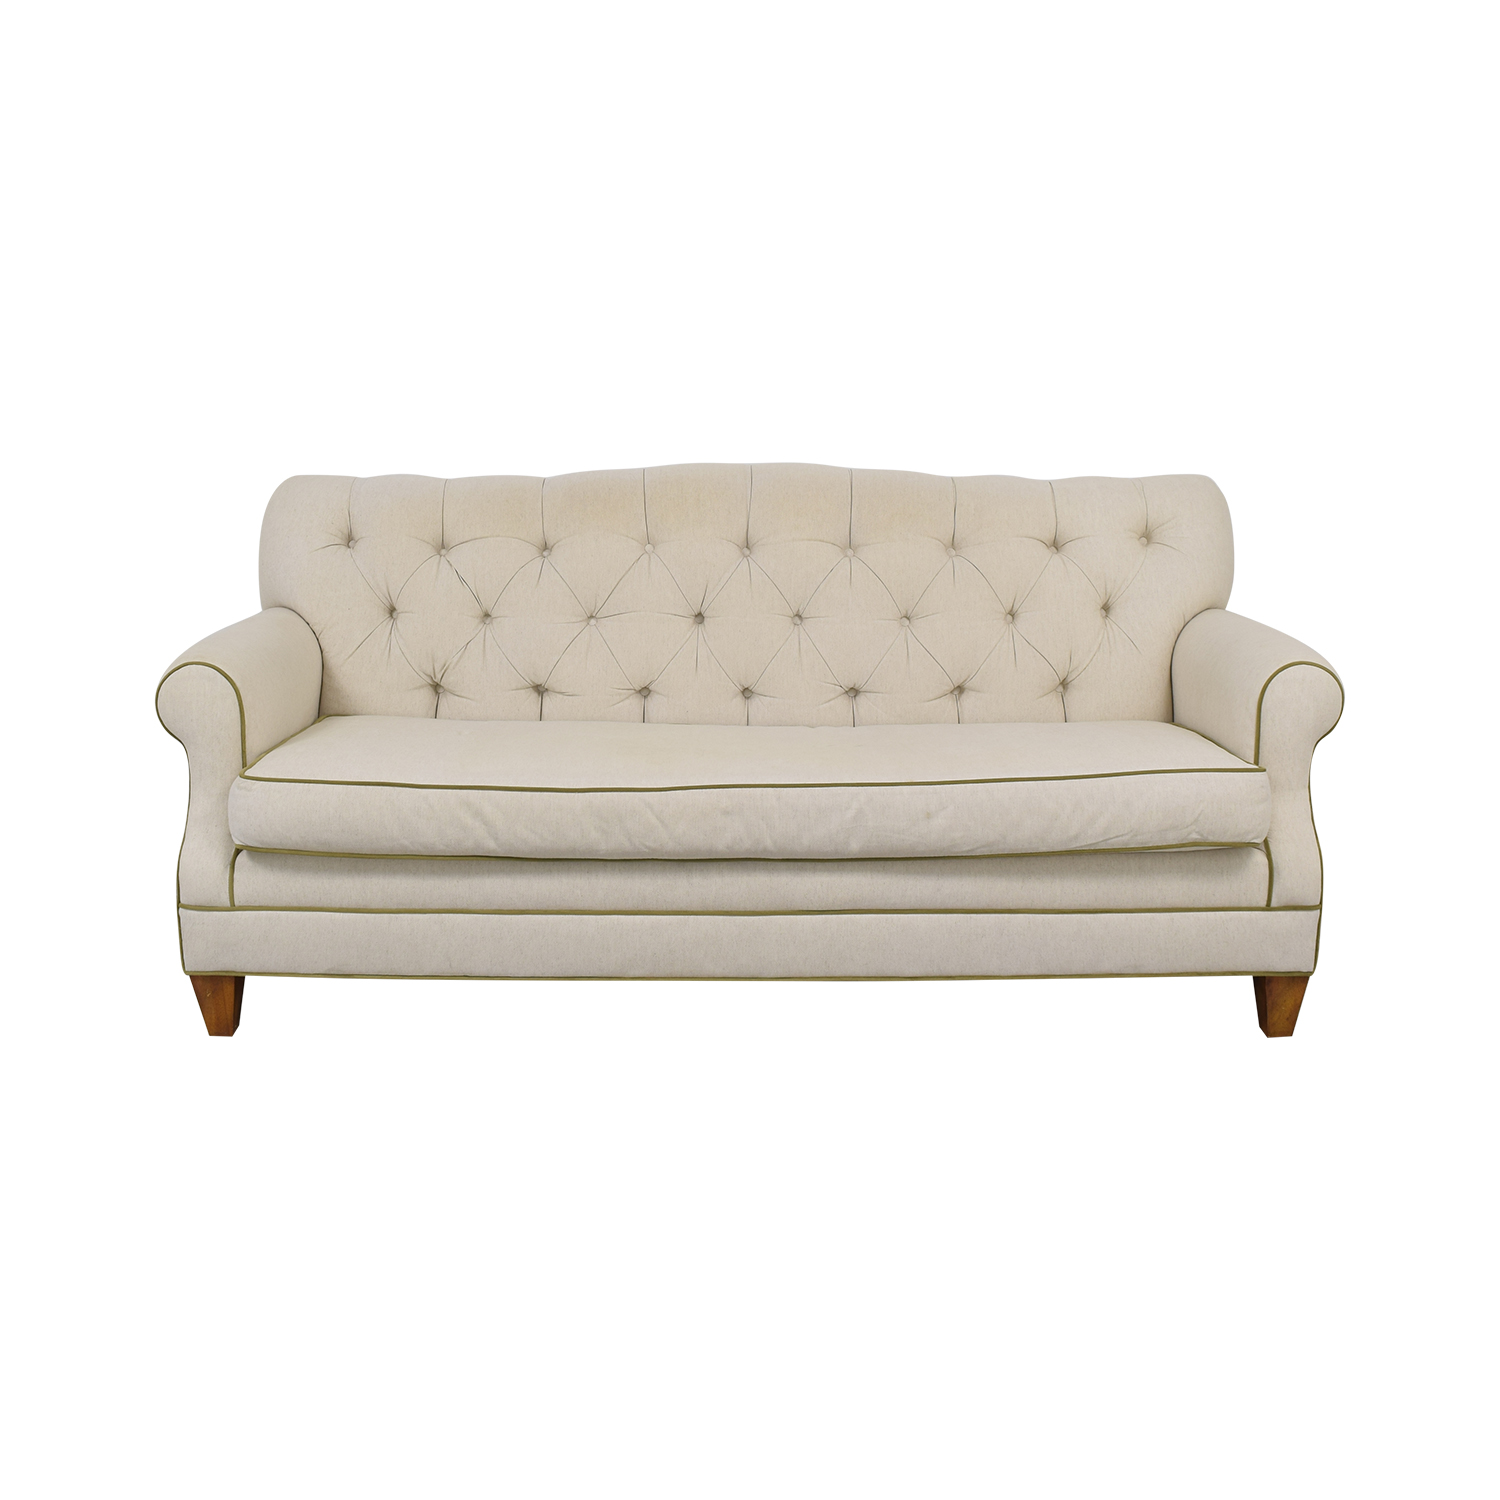 Key City Furniture Key City Furniture Ricci Tufted Sofa nyc